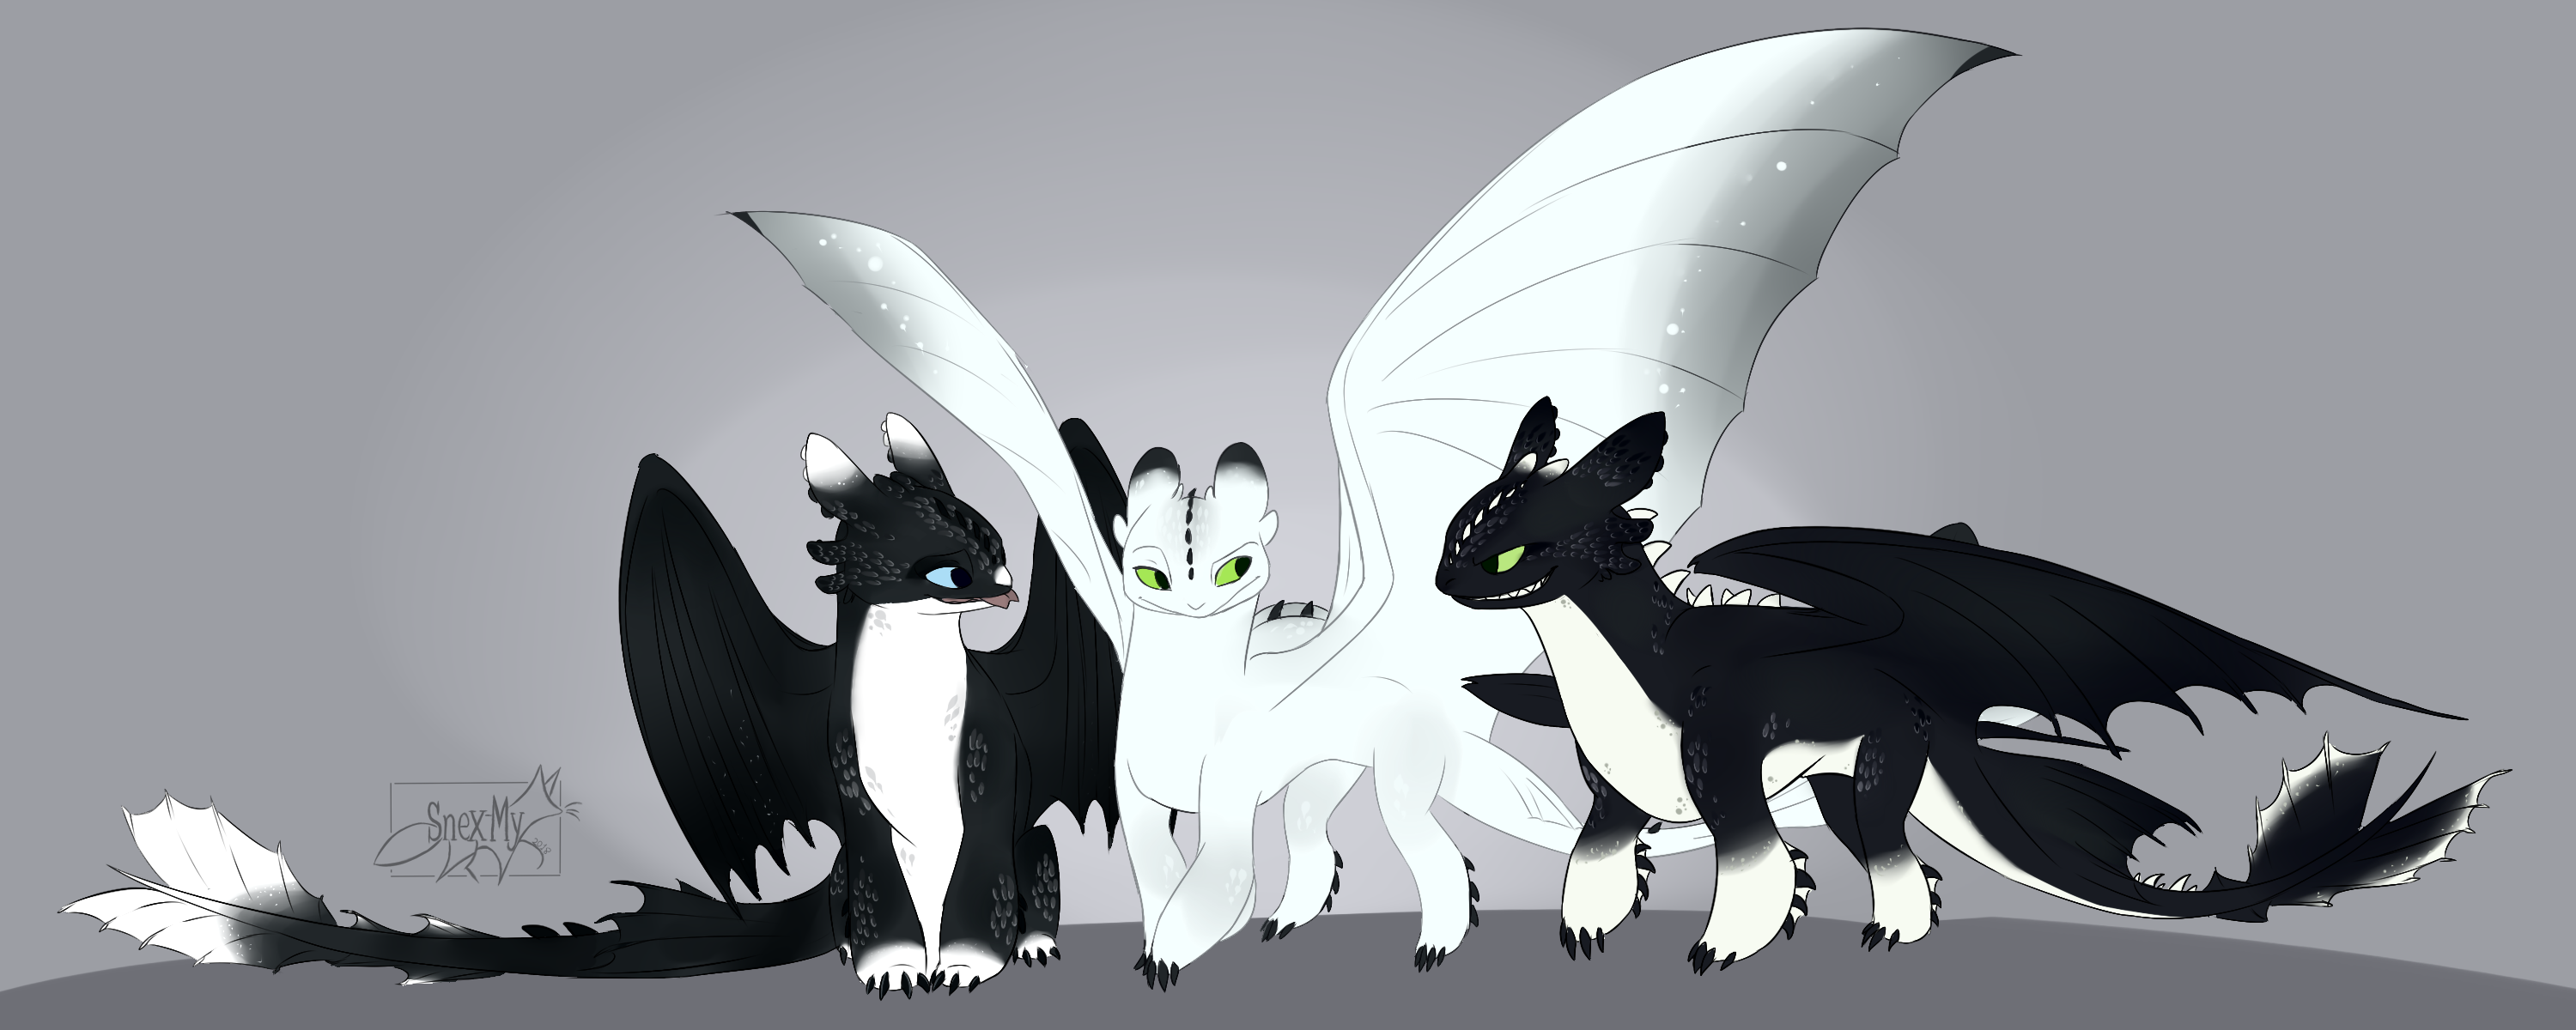 Night Lights Children of Toothless Adults - Httyd by SnexMy